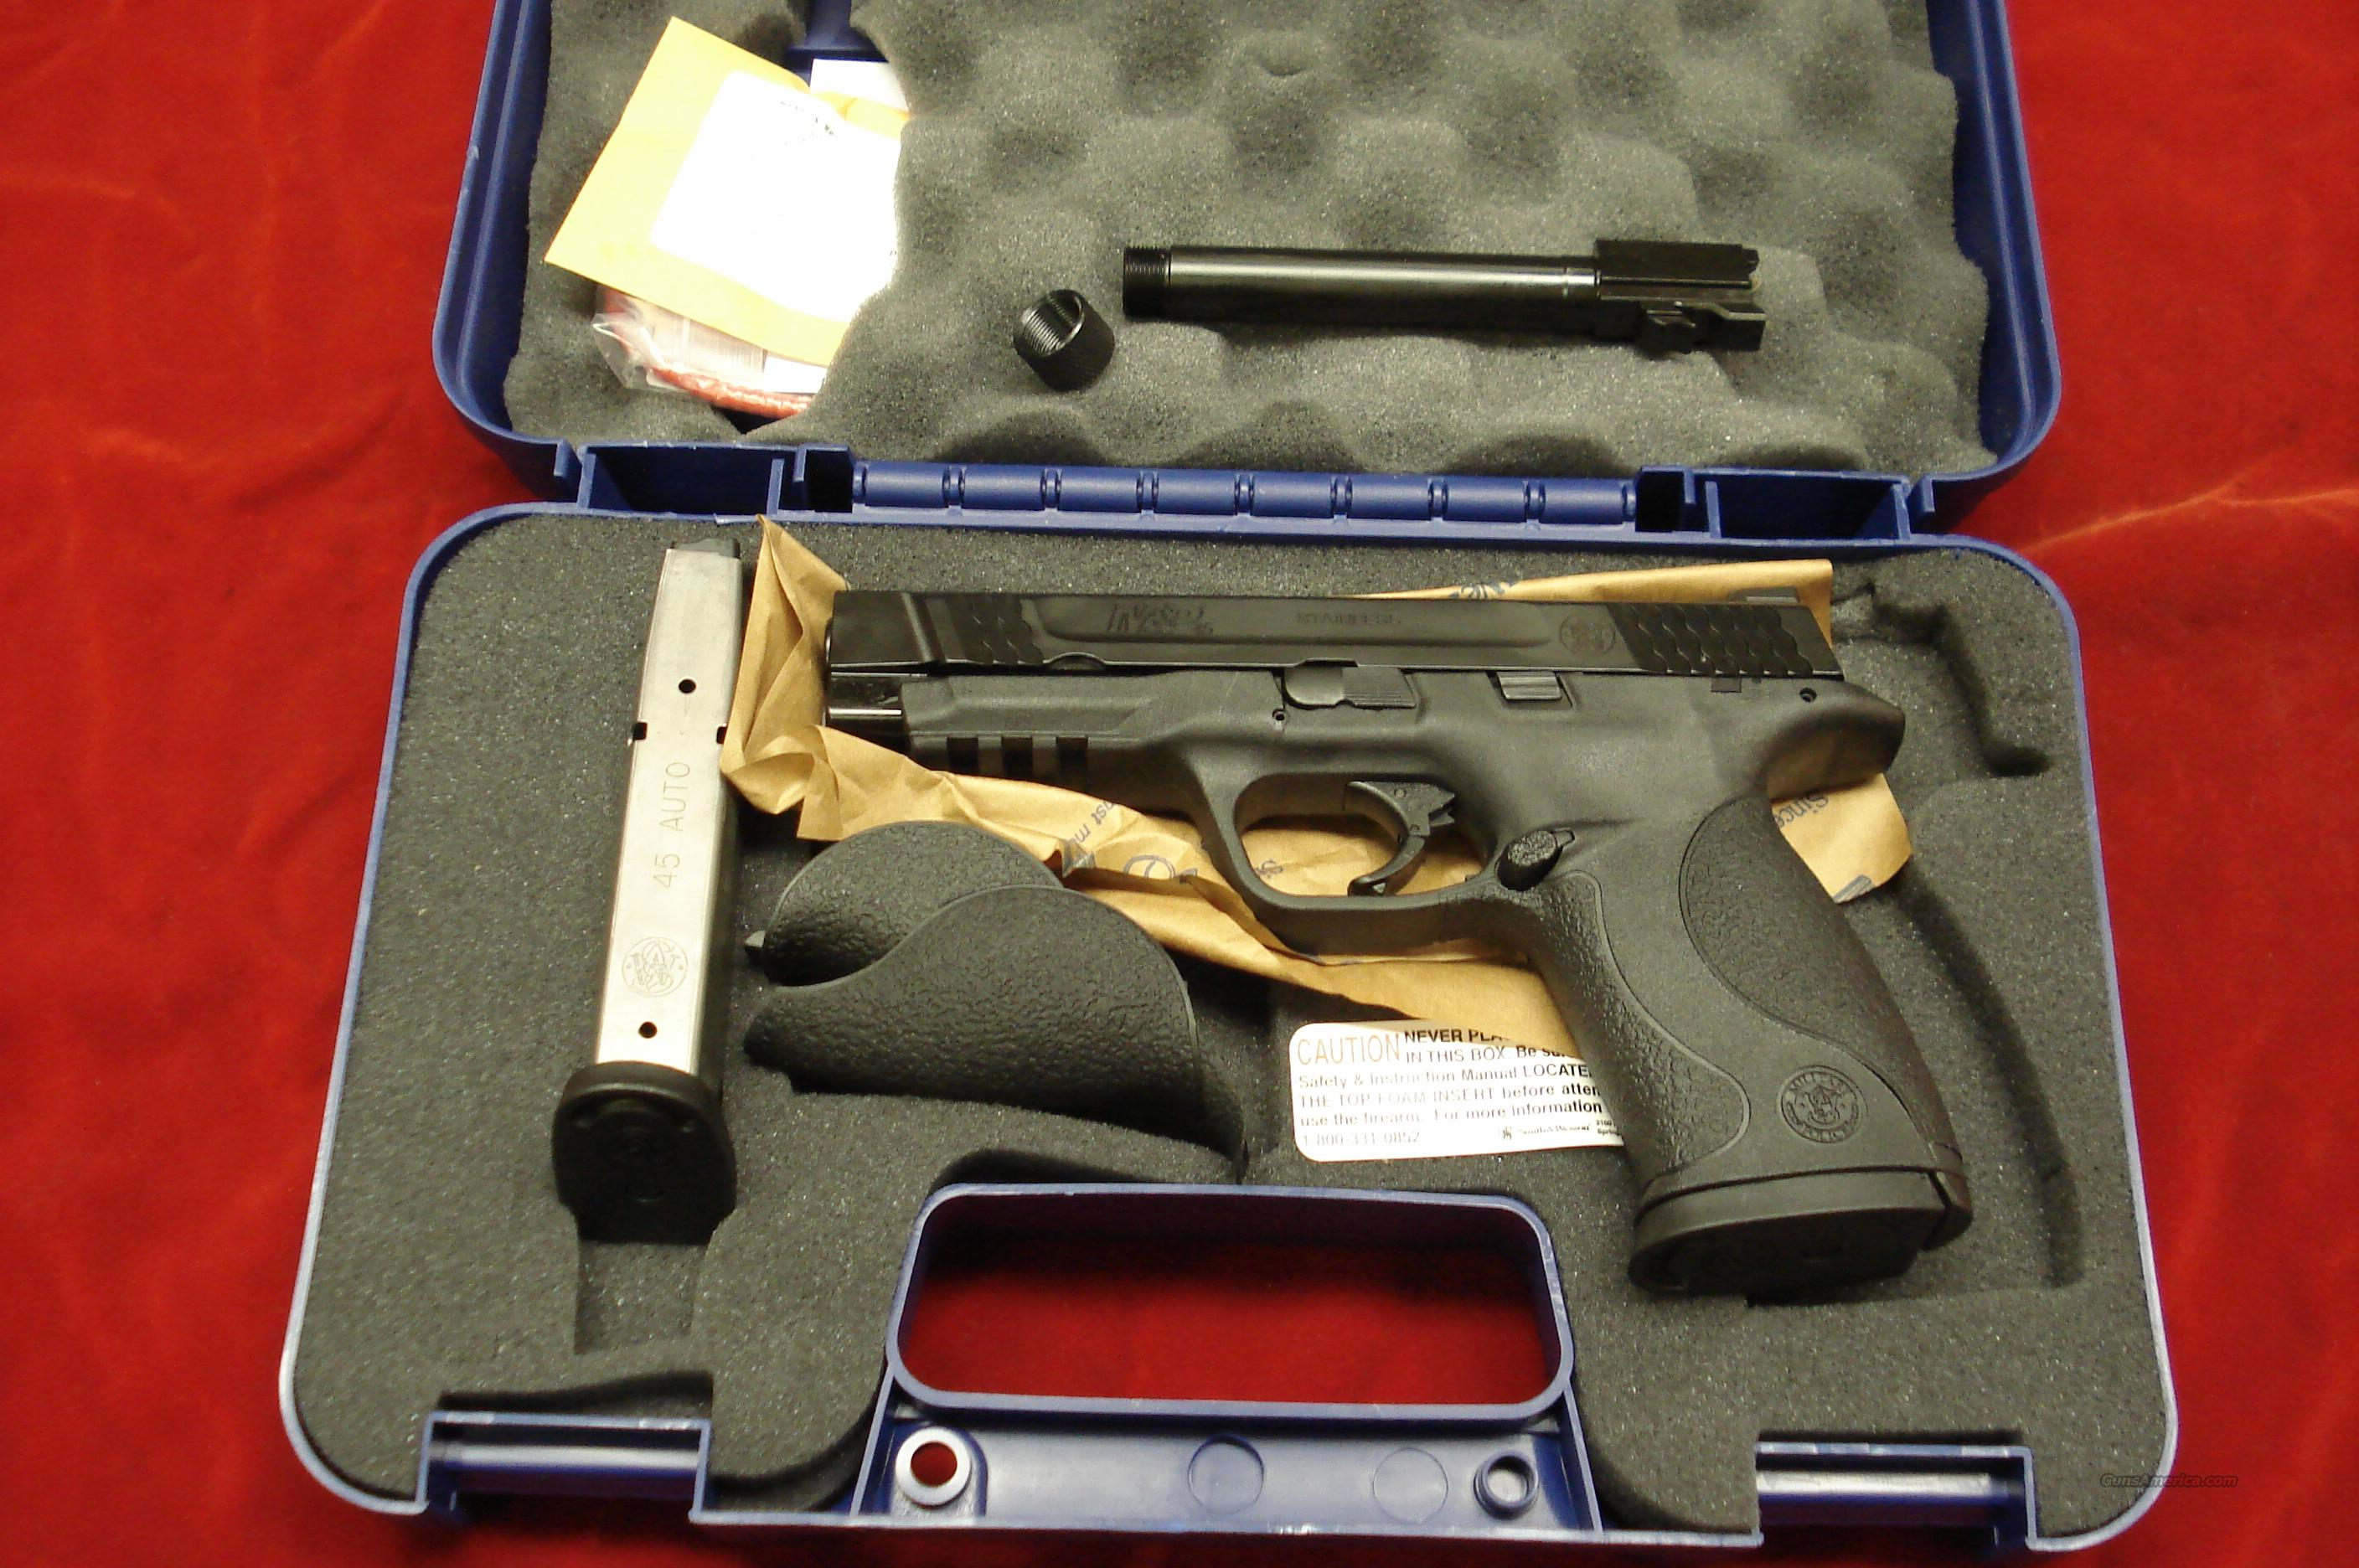 SMITH AND WESSON M&P 45ACP ADDITIONAL TREADED BARREL KIT NEW   Guns > Pistols > Smith & Wesson Pistols - Autos > Polymer Frame